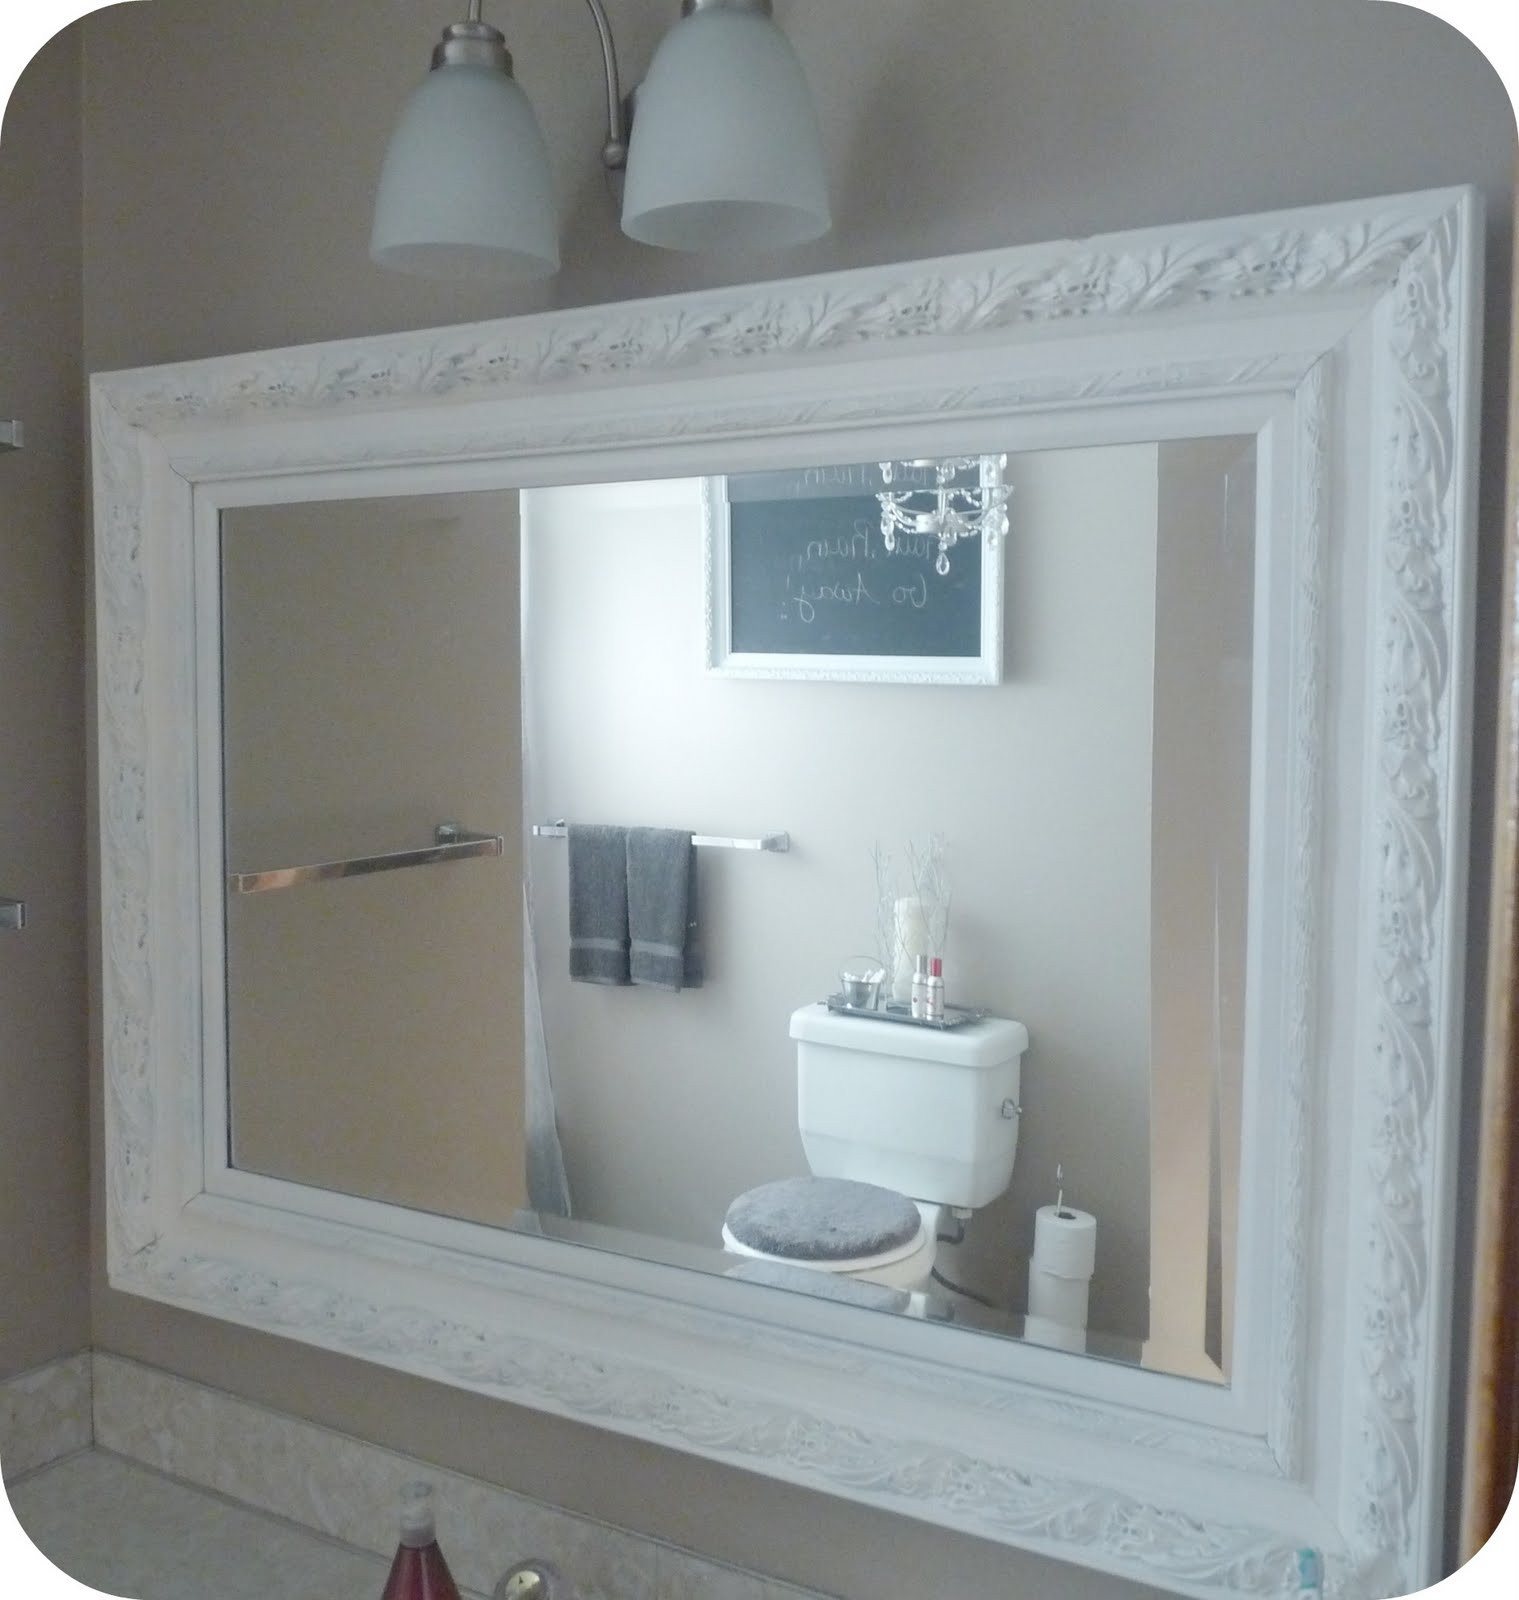 Inspirational Beach Themed Bathroom Mirrors 27 Amazing Eyagci Com - Espan pertaining to Awesome Beach Themed Bathroom Mirrors